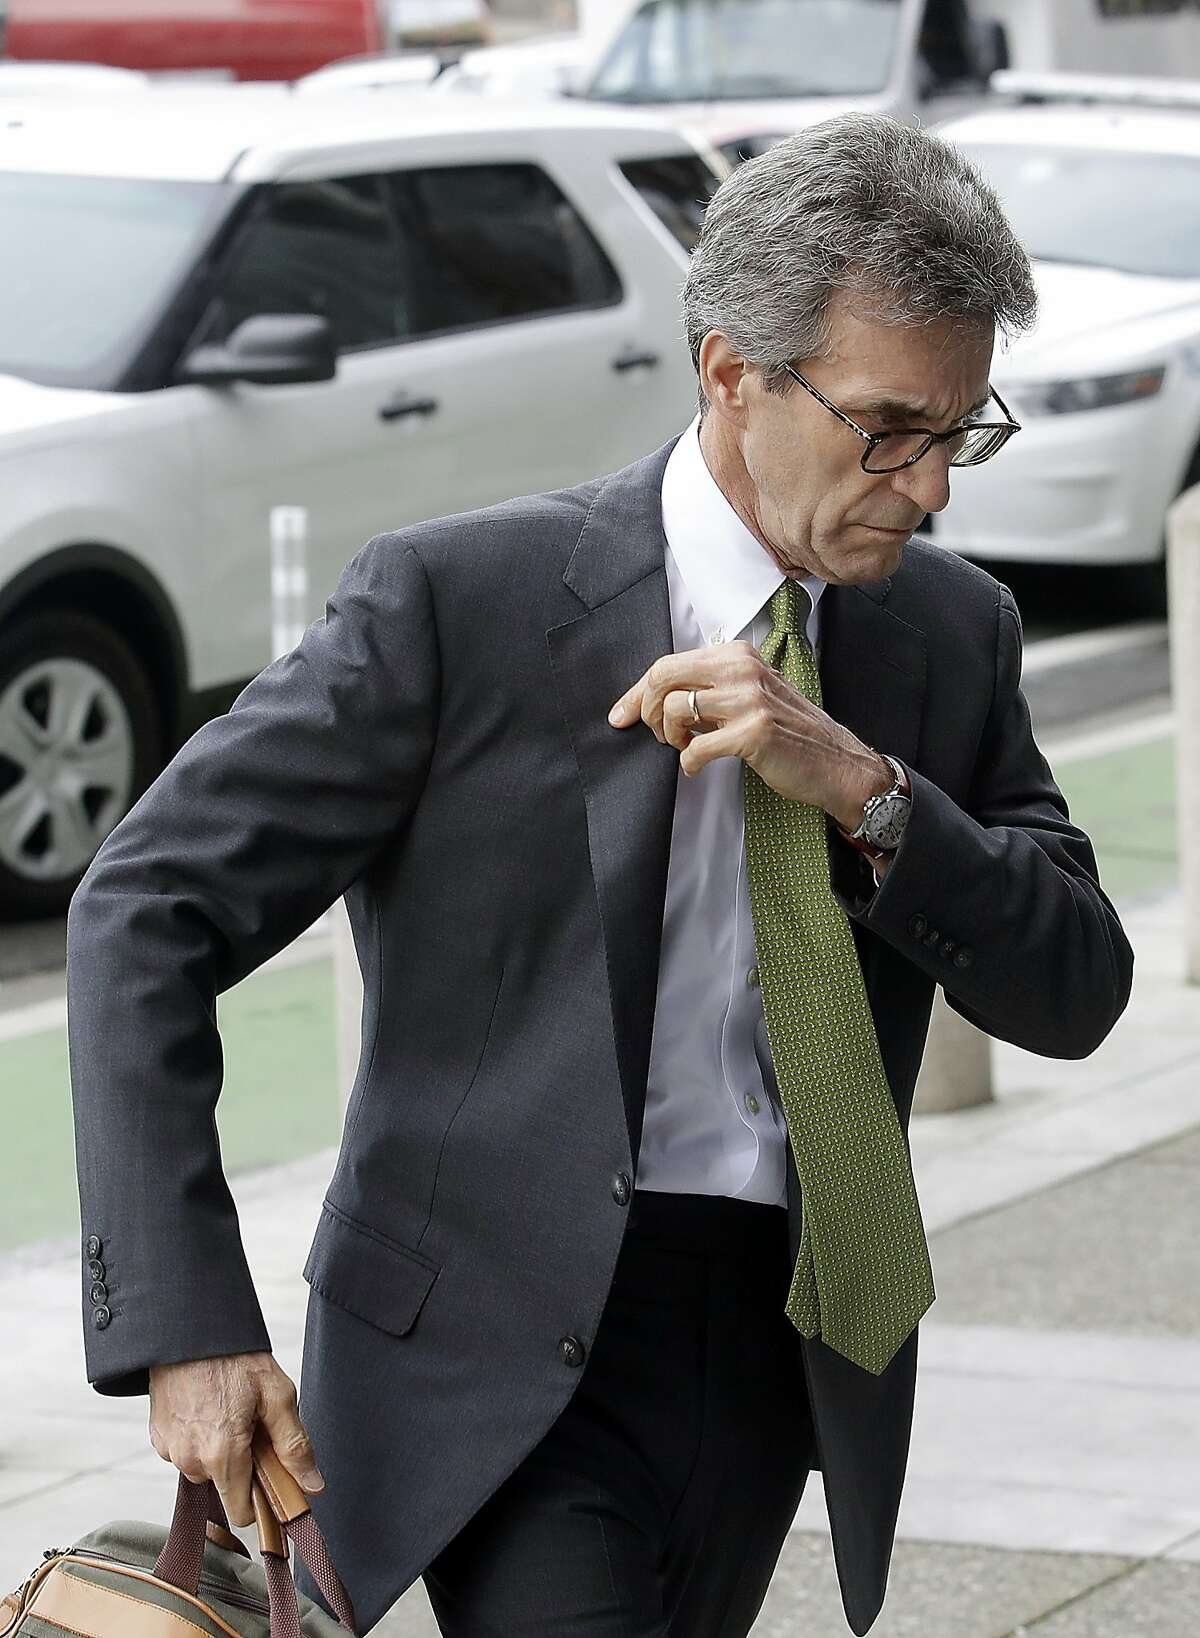 Attorney Stephen Karotkin, representing Pacific Gas & Electric Corp., arrives at a Federal Courthouse in San Francisco, Tuesday, Jan. 29, 2019. Faced with potentially ruinous lawsuits over California's recent wildfires, Pacific Gas & Electric Corp. filed for bankruptcy protection Tuesday in a move that could lead to higher bills for customers of the nation's biggest utility and reduce the size of any payouts to fire victims.